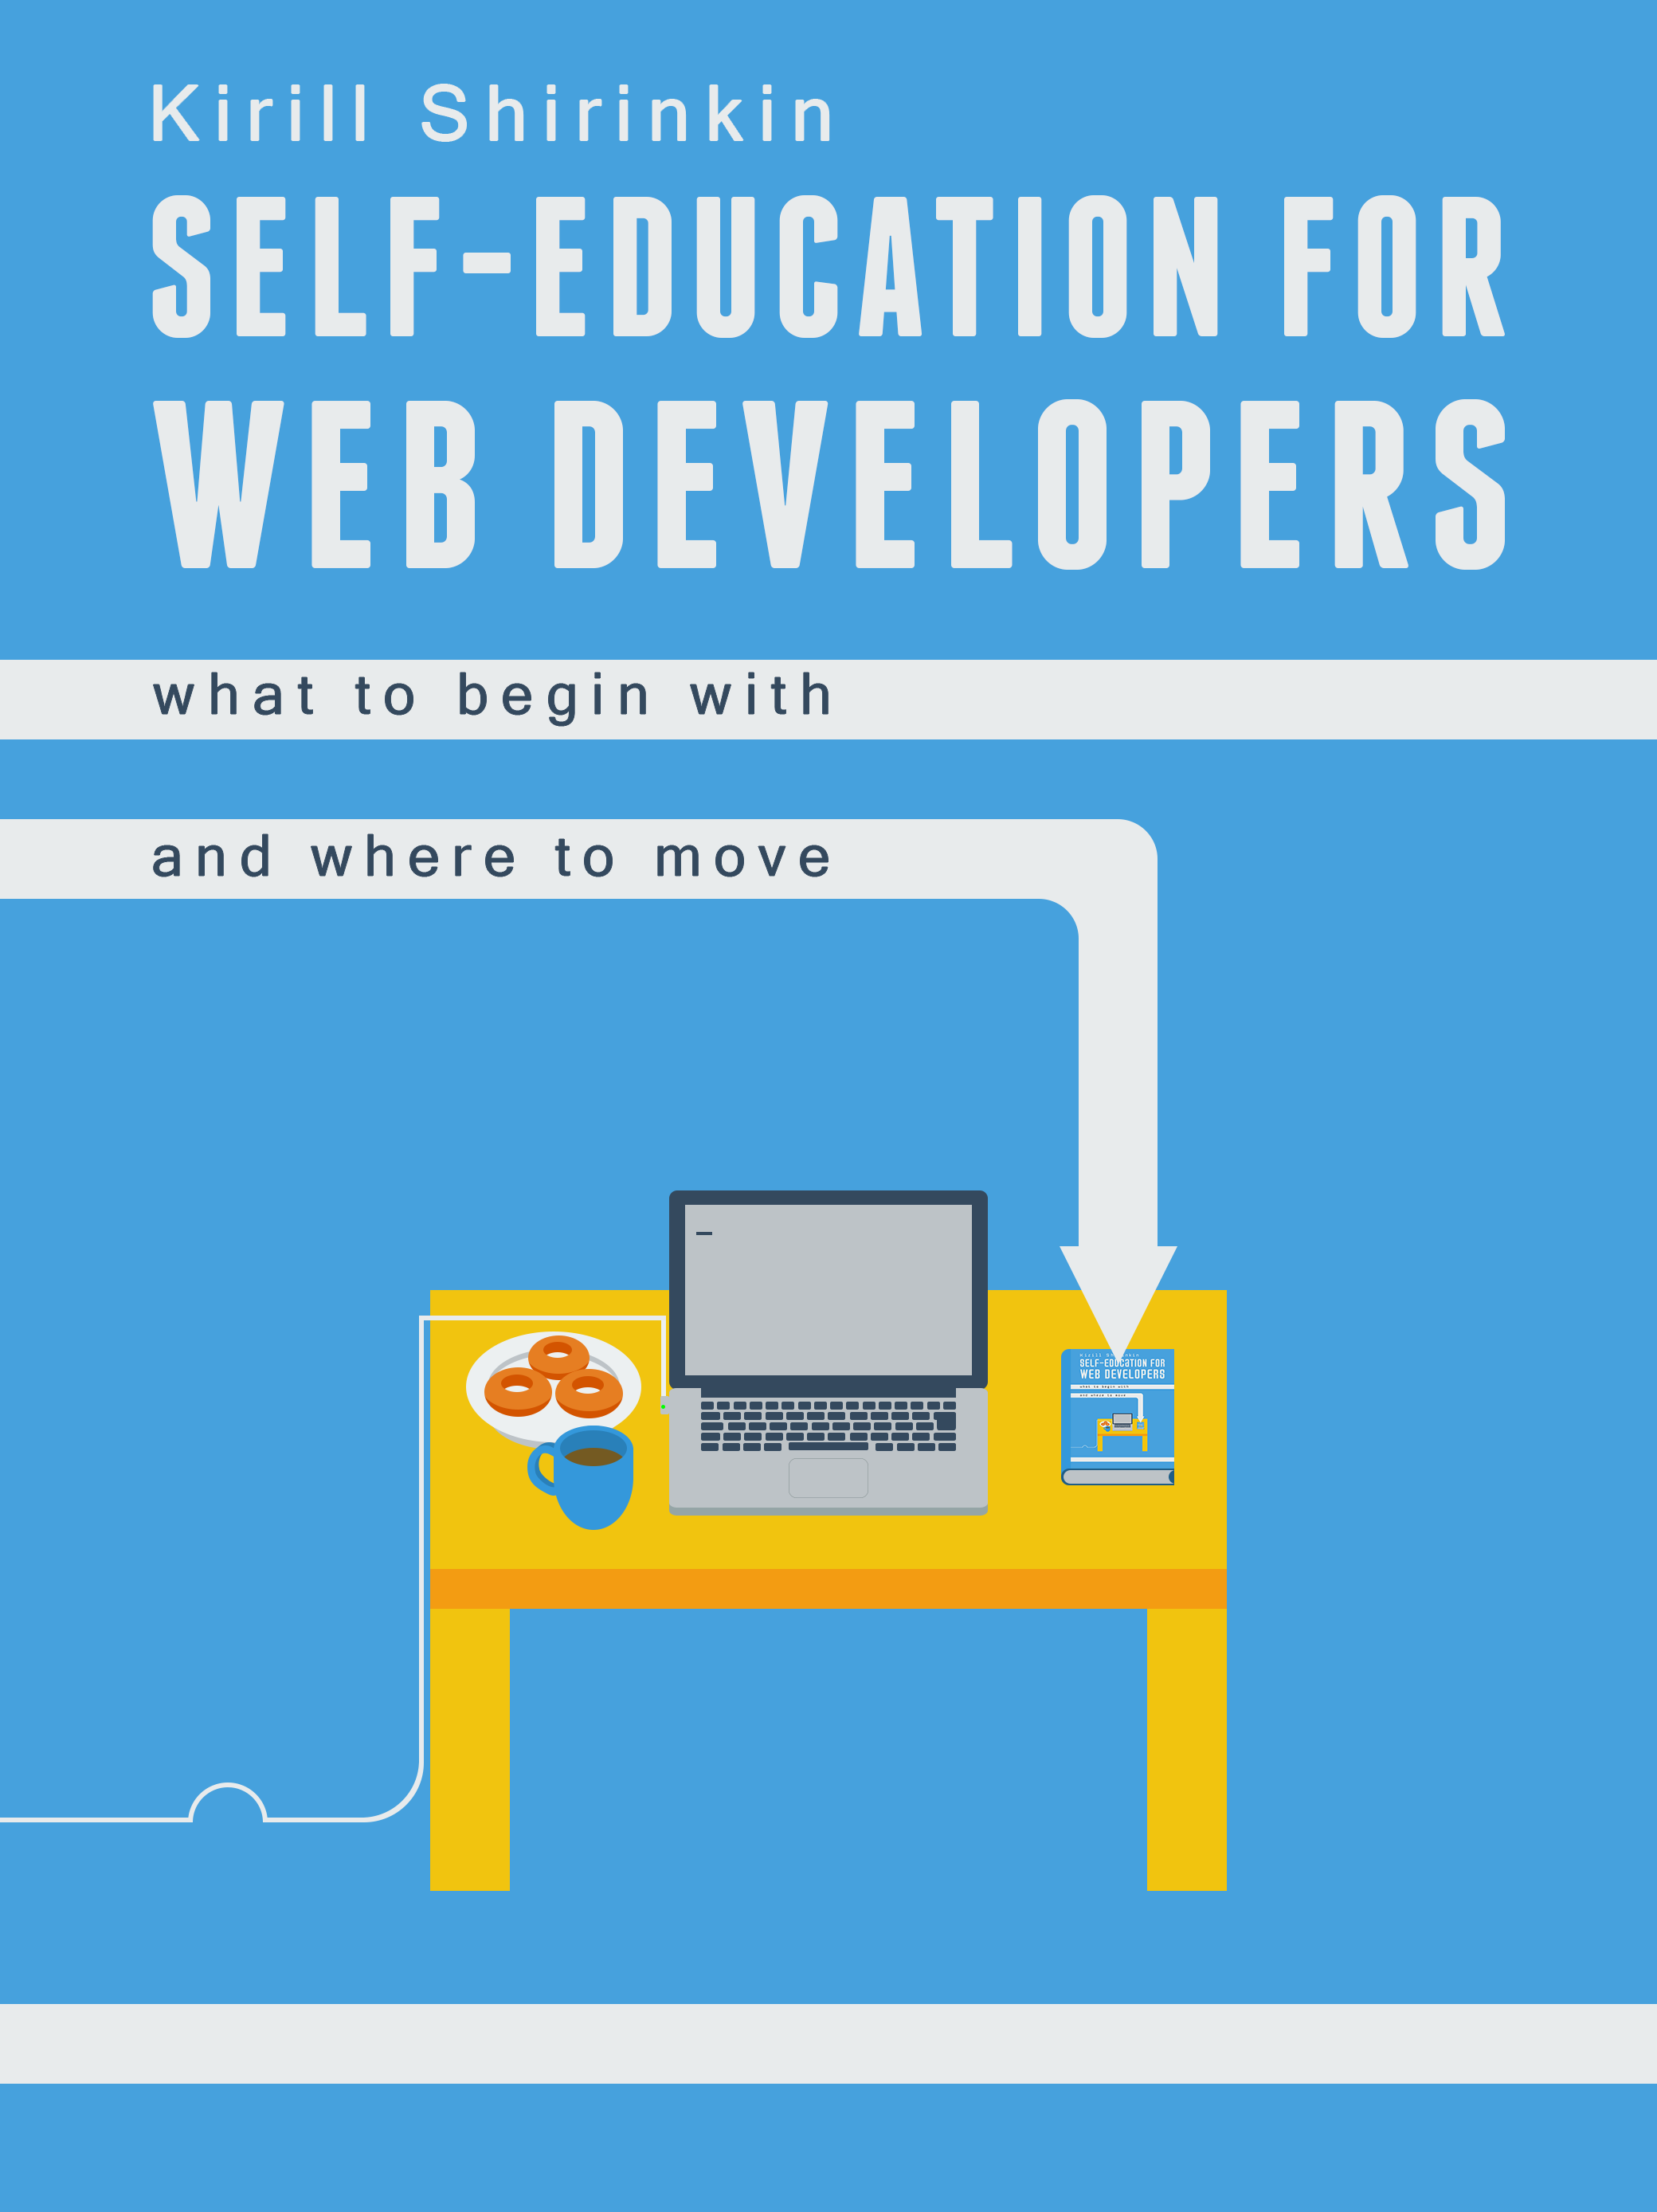 Self-education for Web Developers, a guide for beginners in